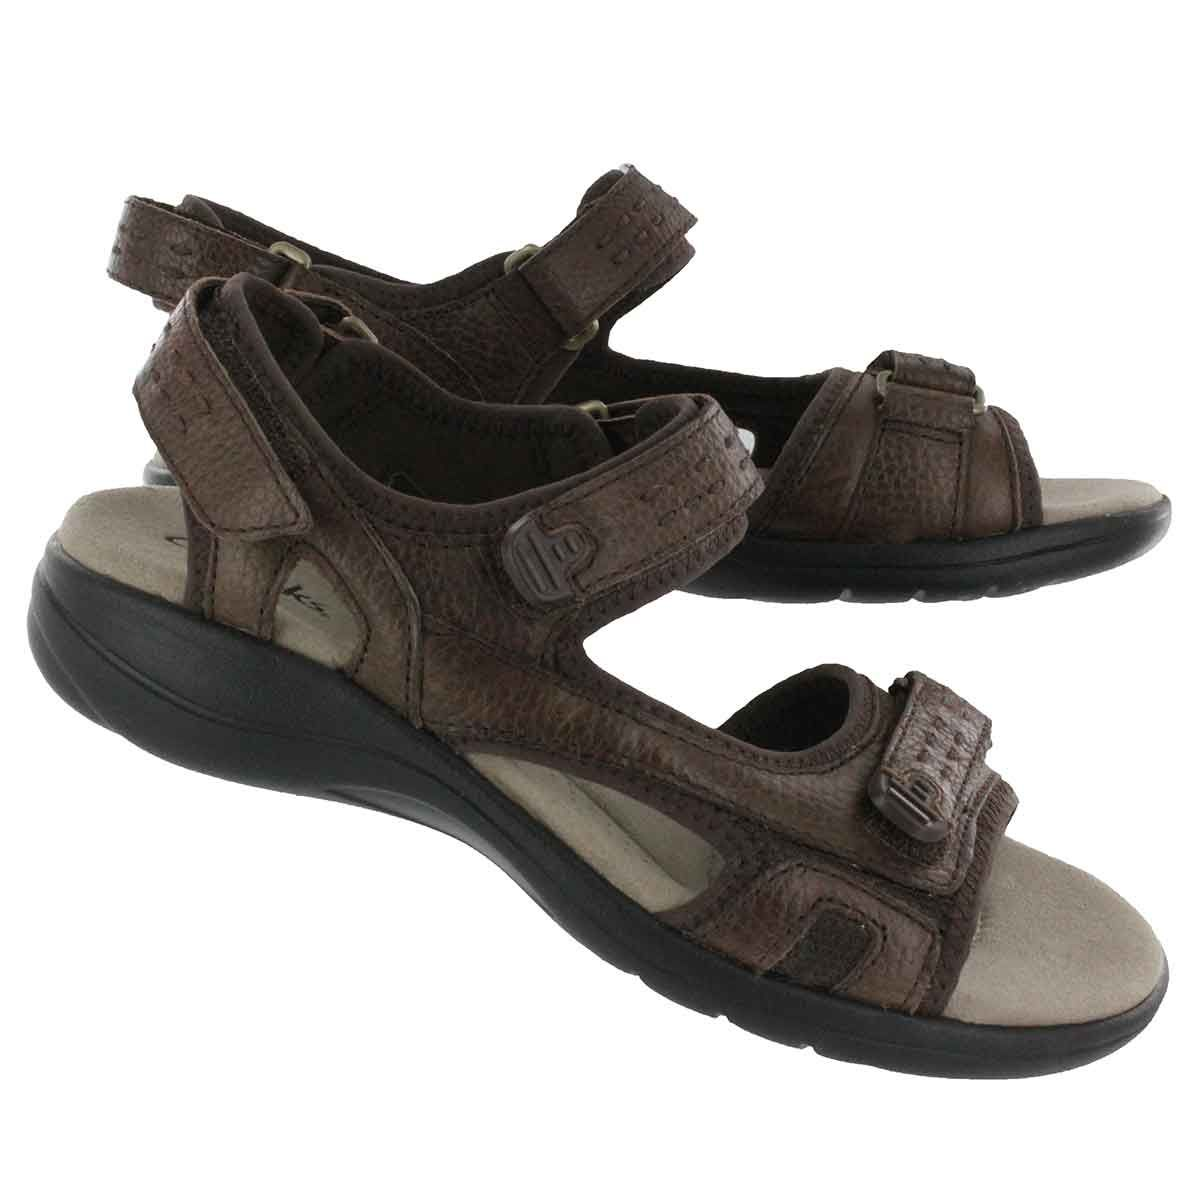 6cbd80ebd26 Clarks Women s MORSE TOUR brown 2 strap sport sandals 65579